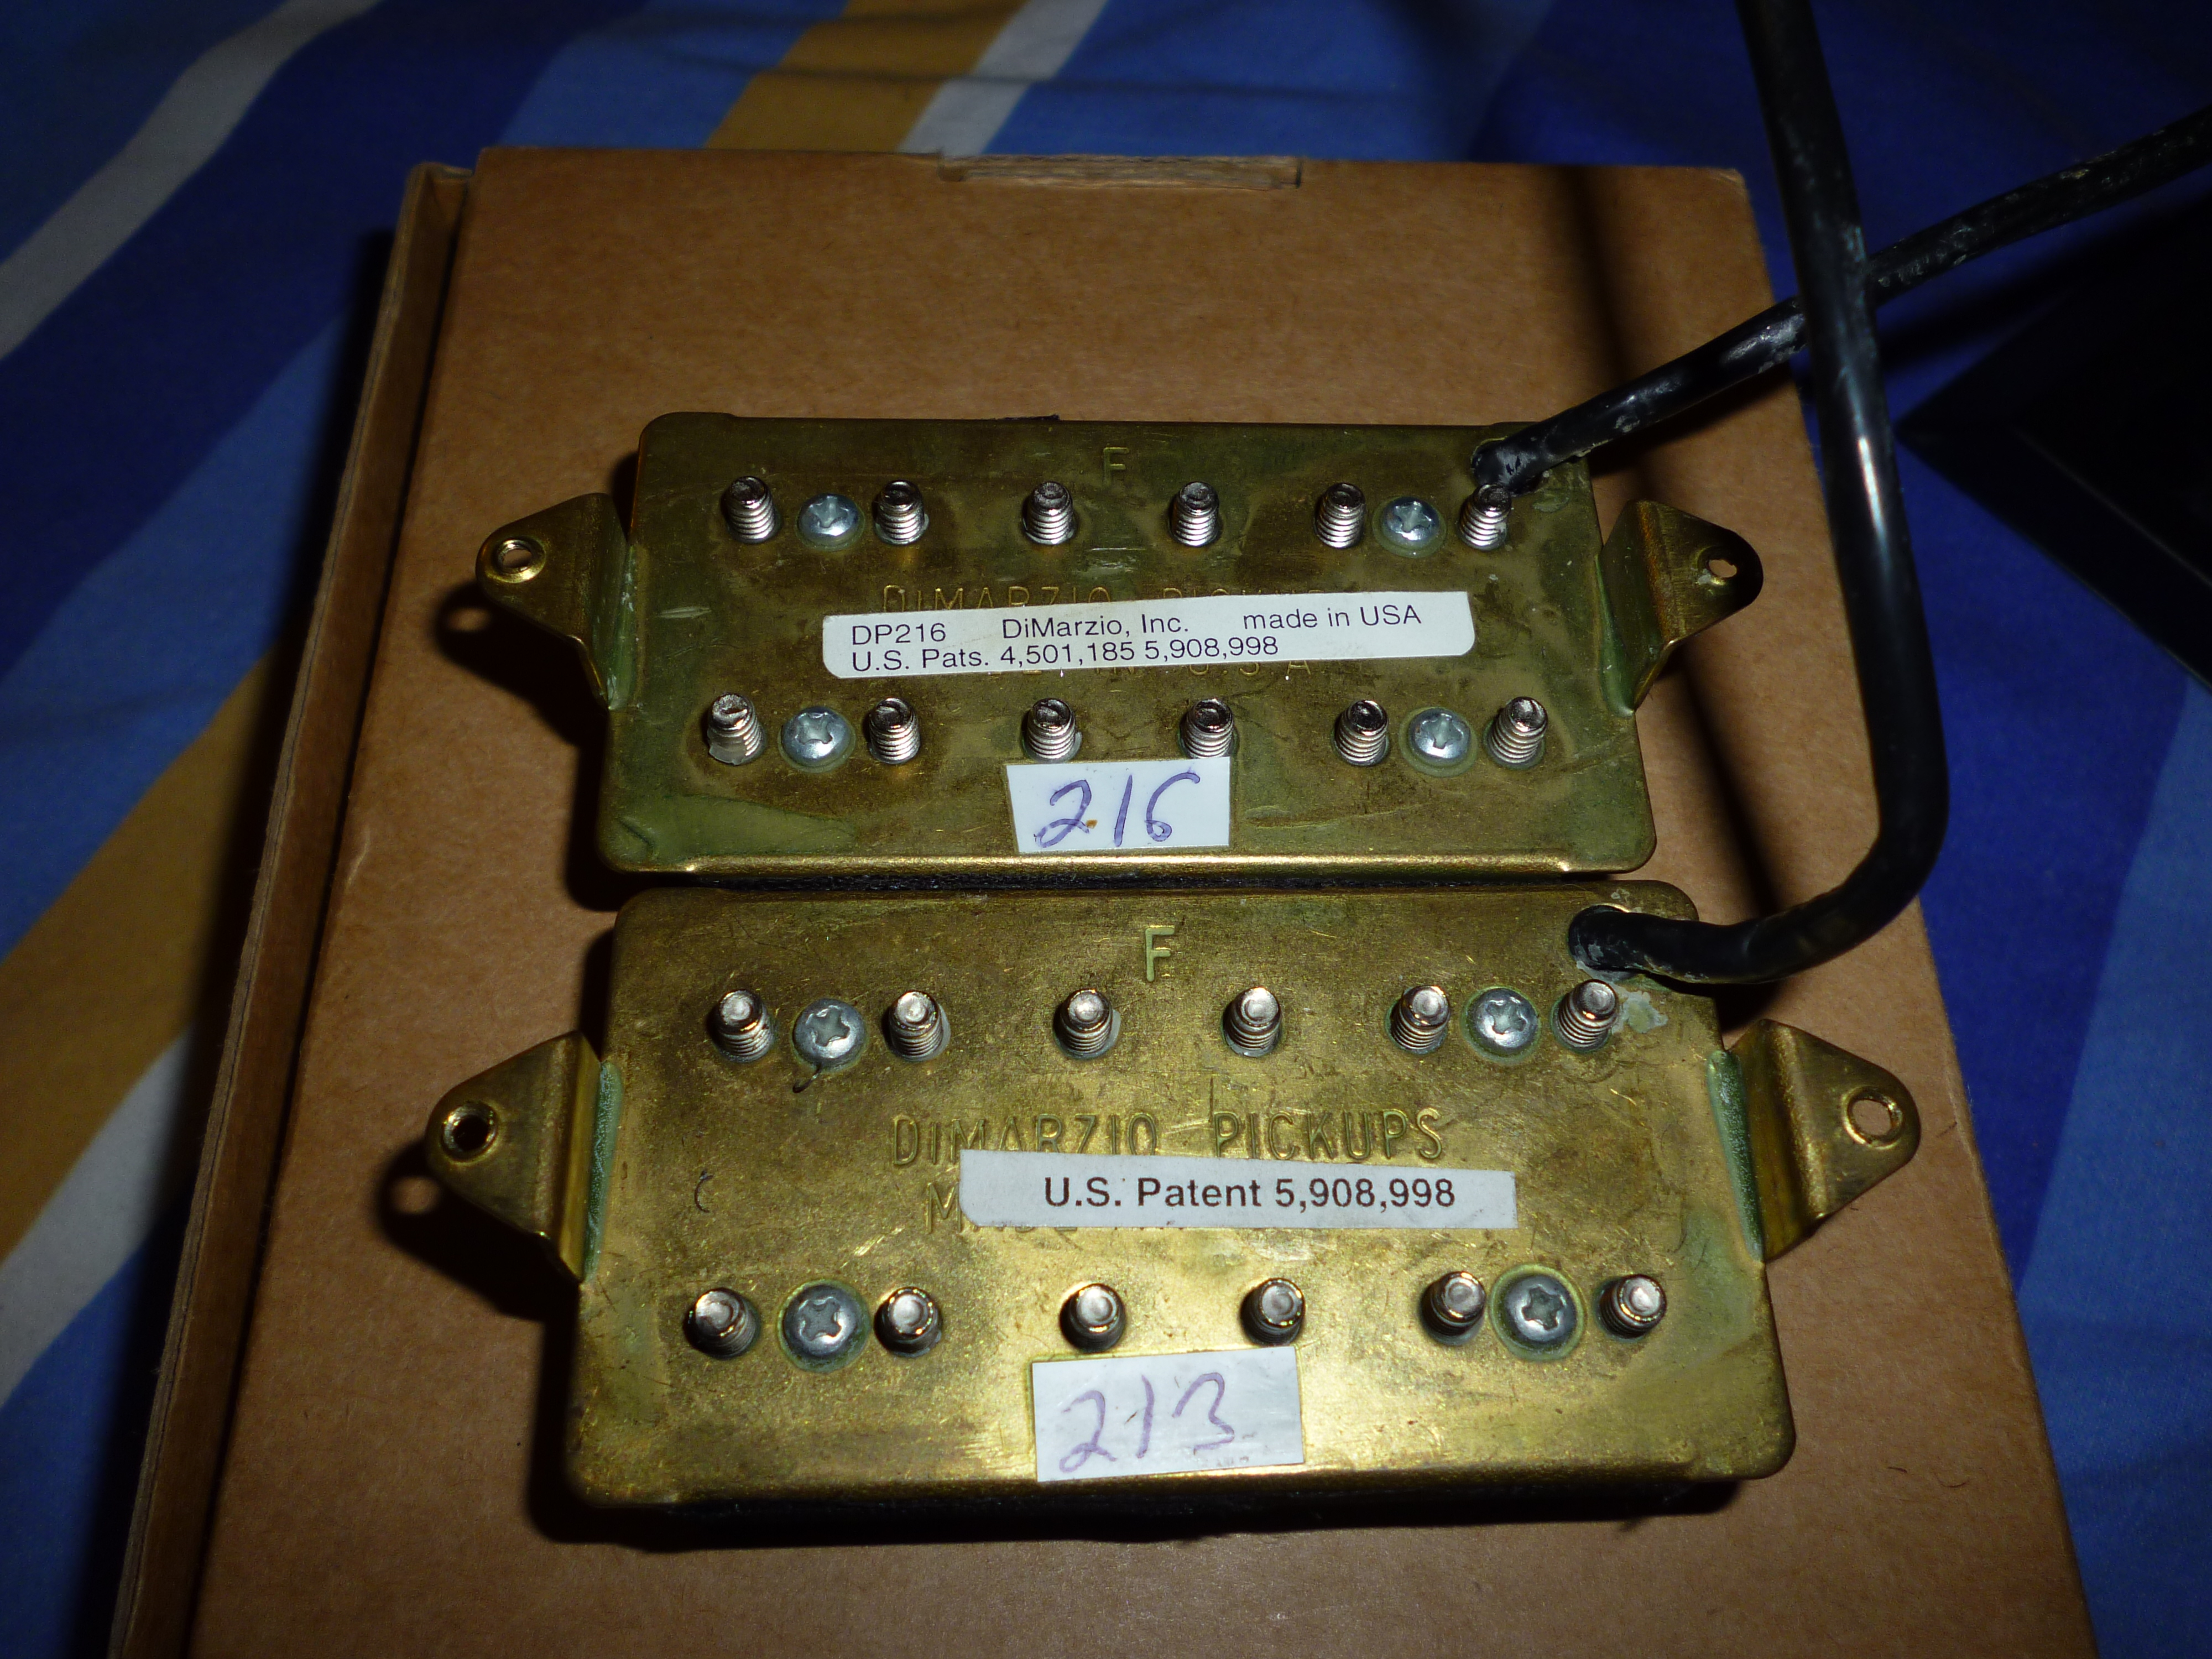 Excellent Two Humbuckers 5 Way Switch Tall Hh 5 Way Switch Wiring Solid Gretsch Wiring Harness Solar Panel Diagram Youthful Solar Panel Wiring Guide ColouredSolar Panel Diagrams DiMarzio DP213F PAF Joe F Spaced Image (#656296)   Audiofanzine